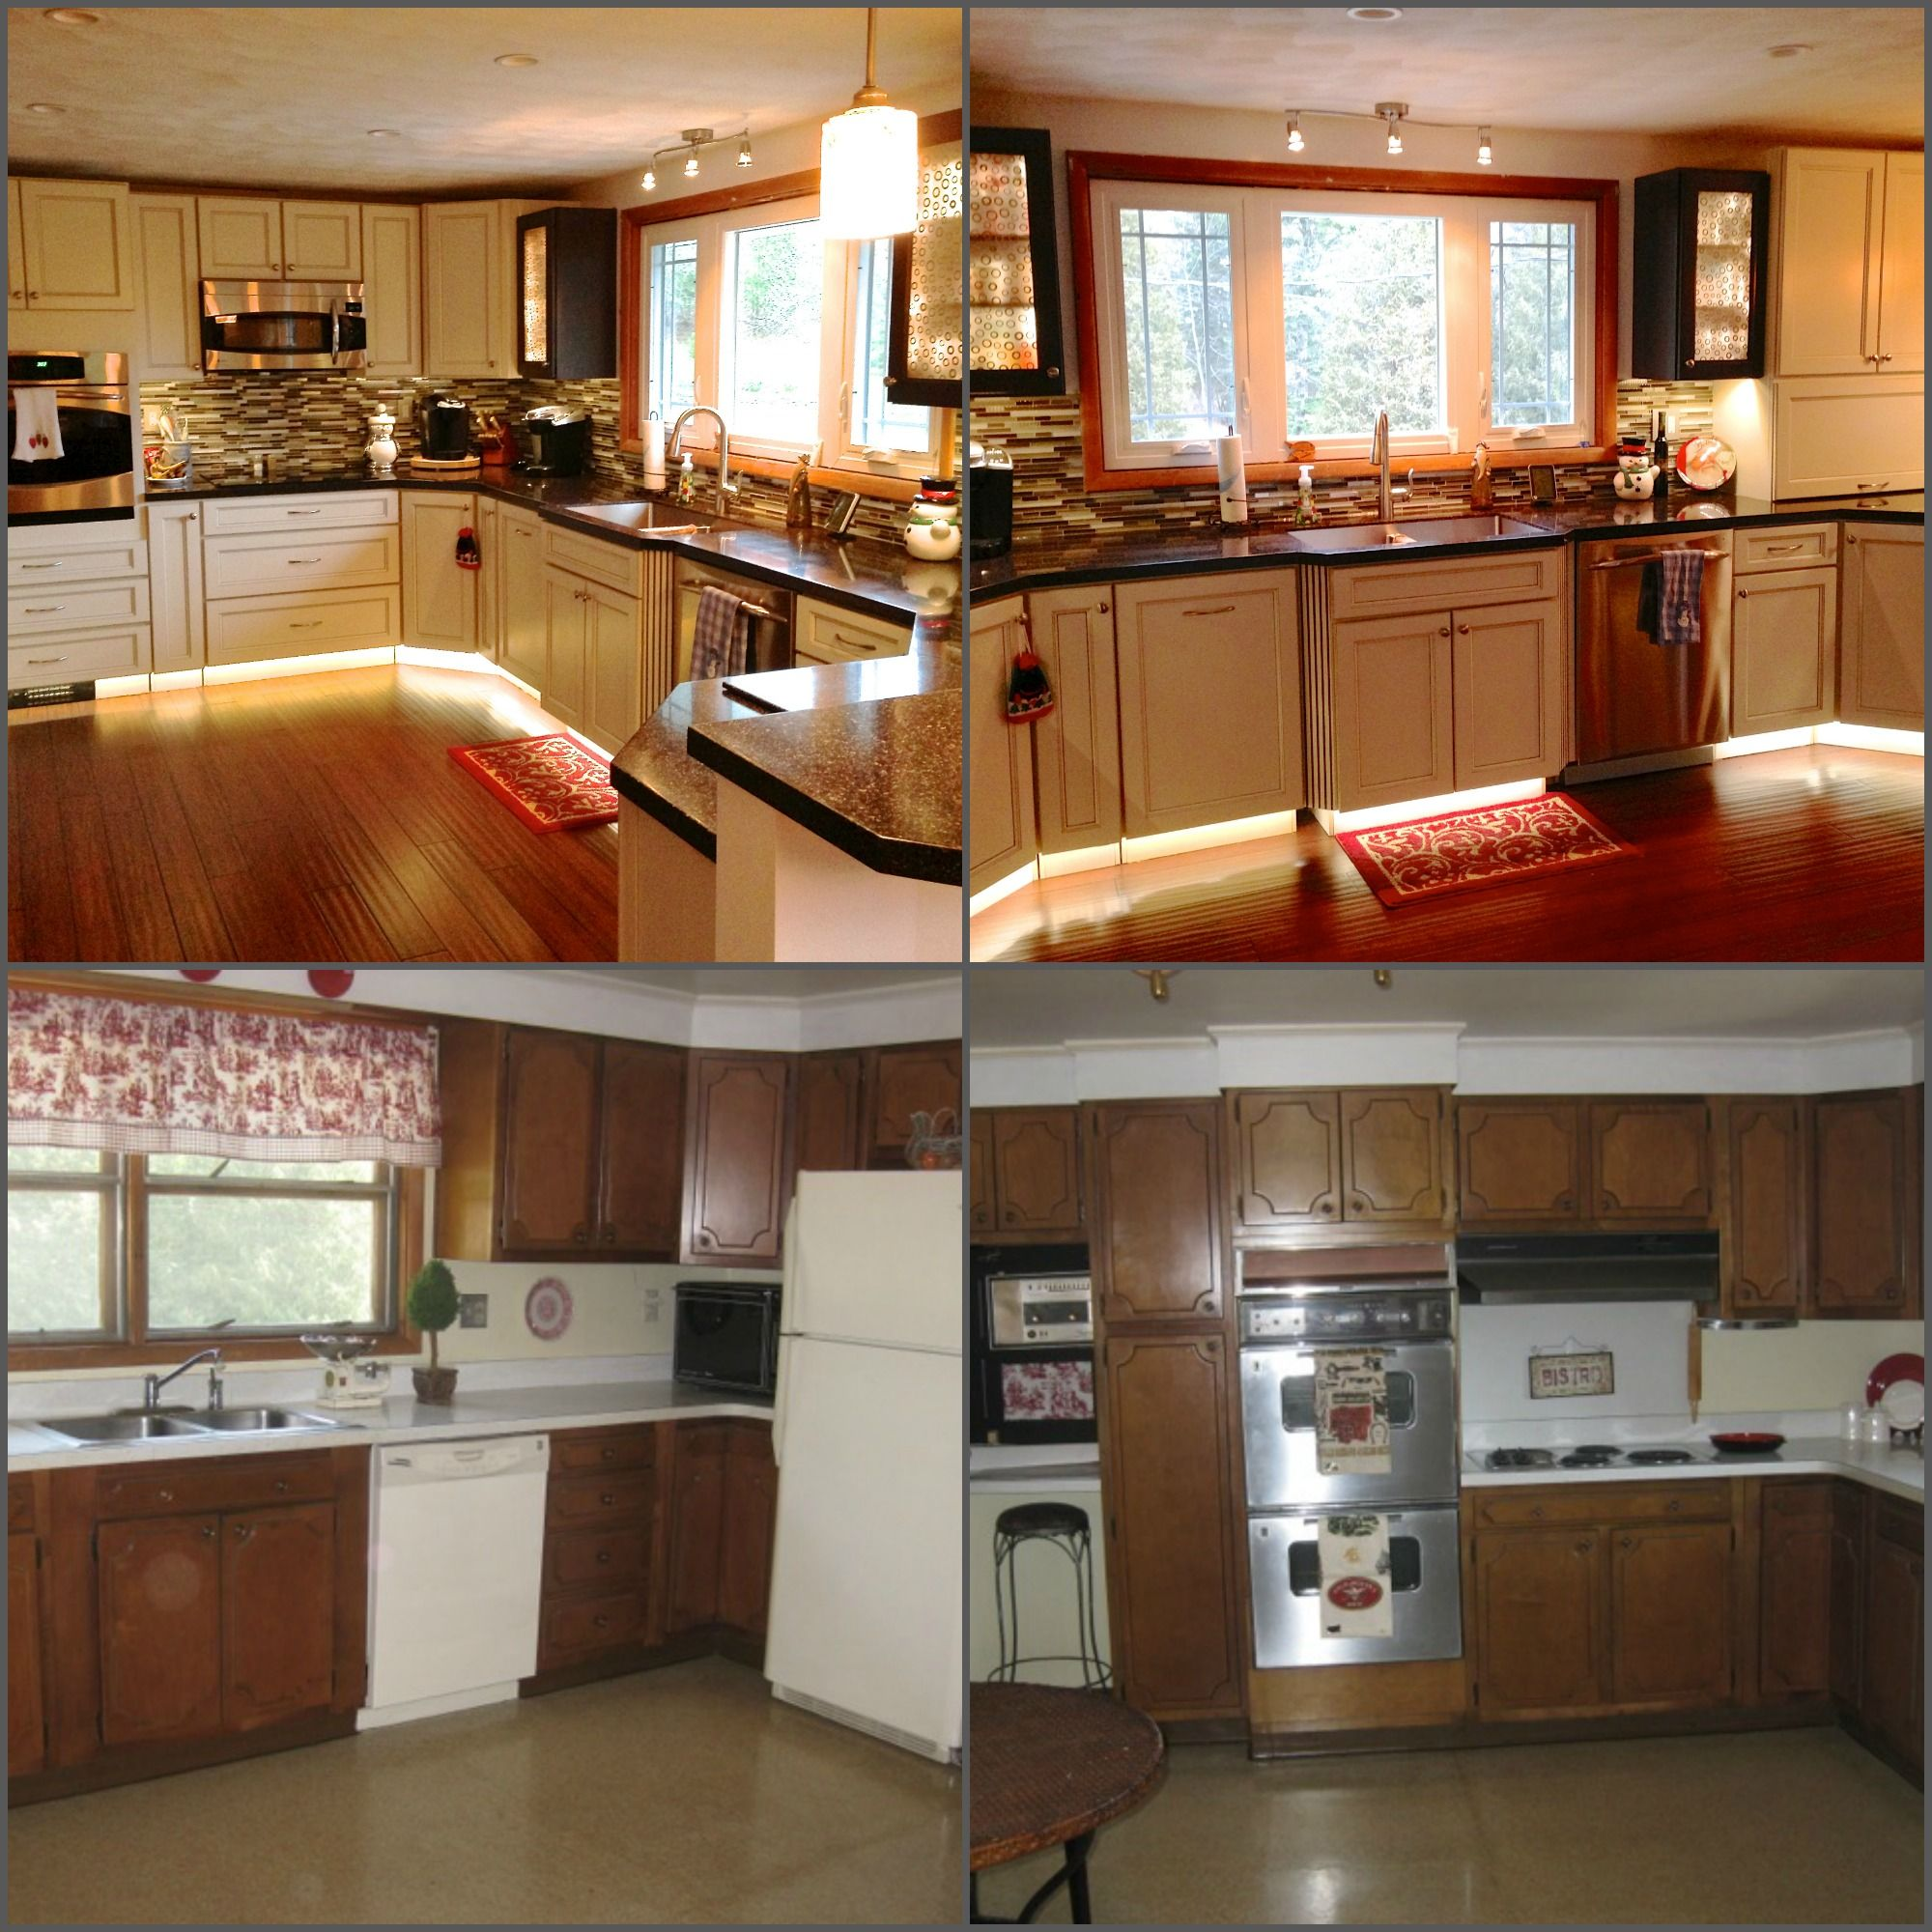 Kitchen remodel mobile home remodeling ideas pinterest Mobile home kitchen remodel pictures